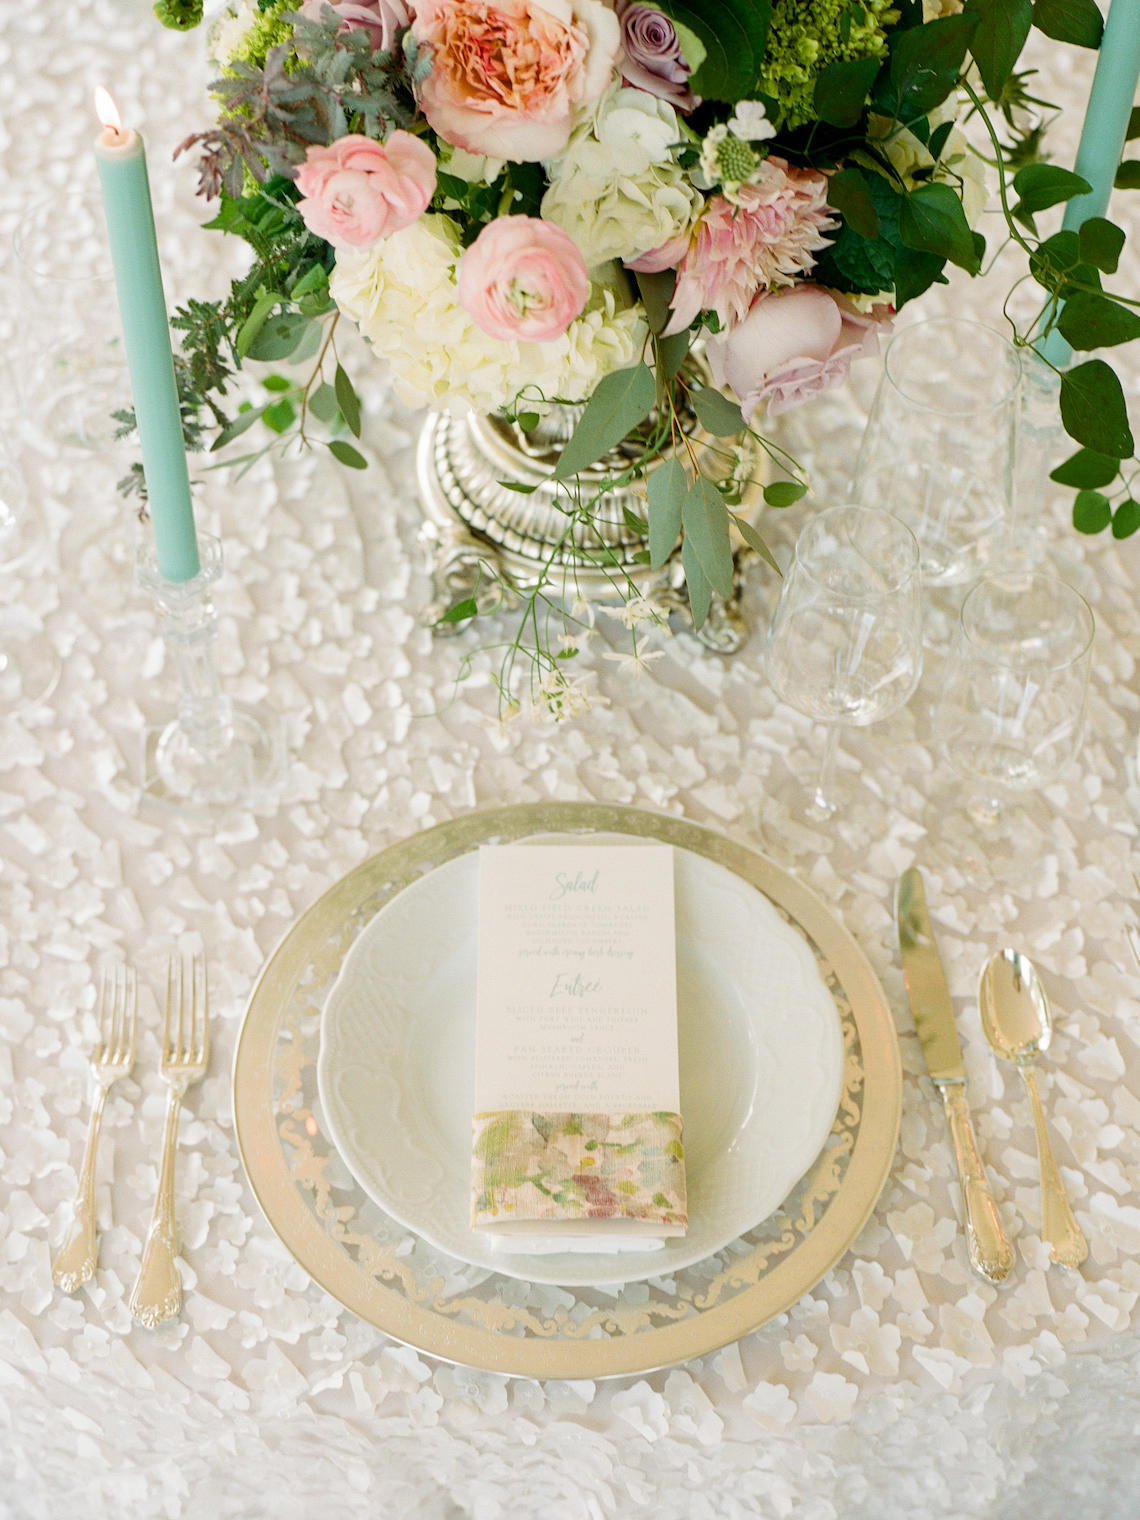 Feminine Floral-Filled Alabama Wedding Inspiration with a Getaway Bicycle – Davy Whitener 4